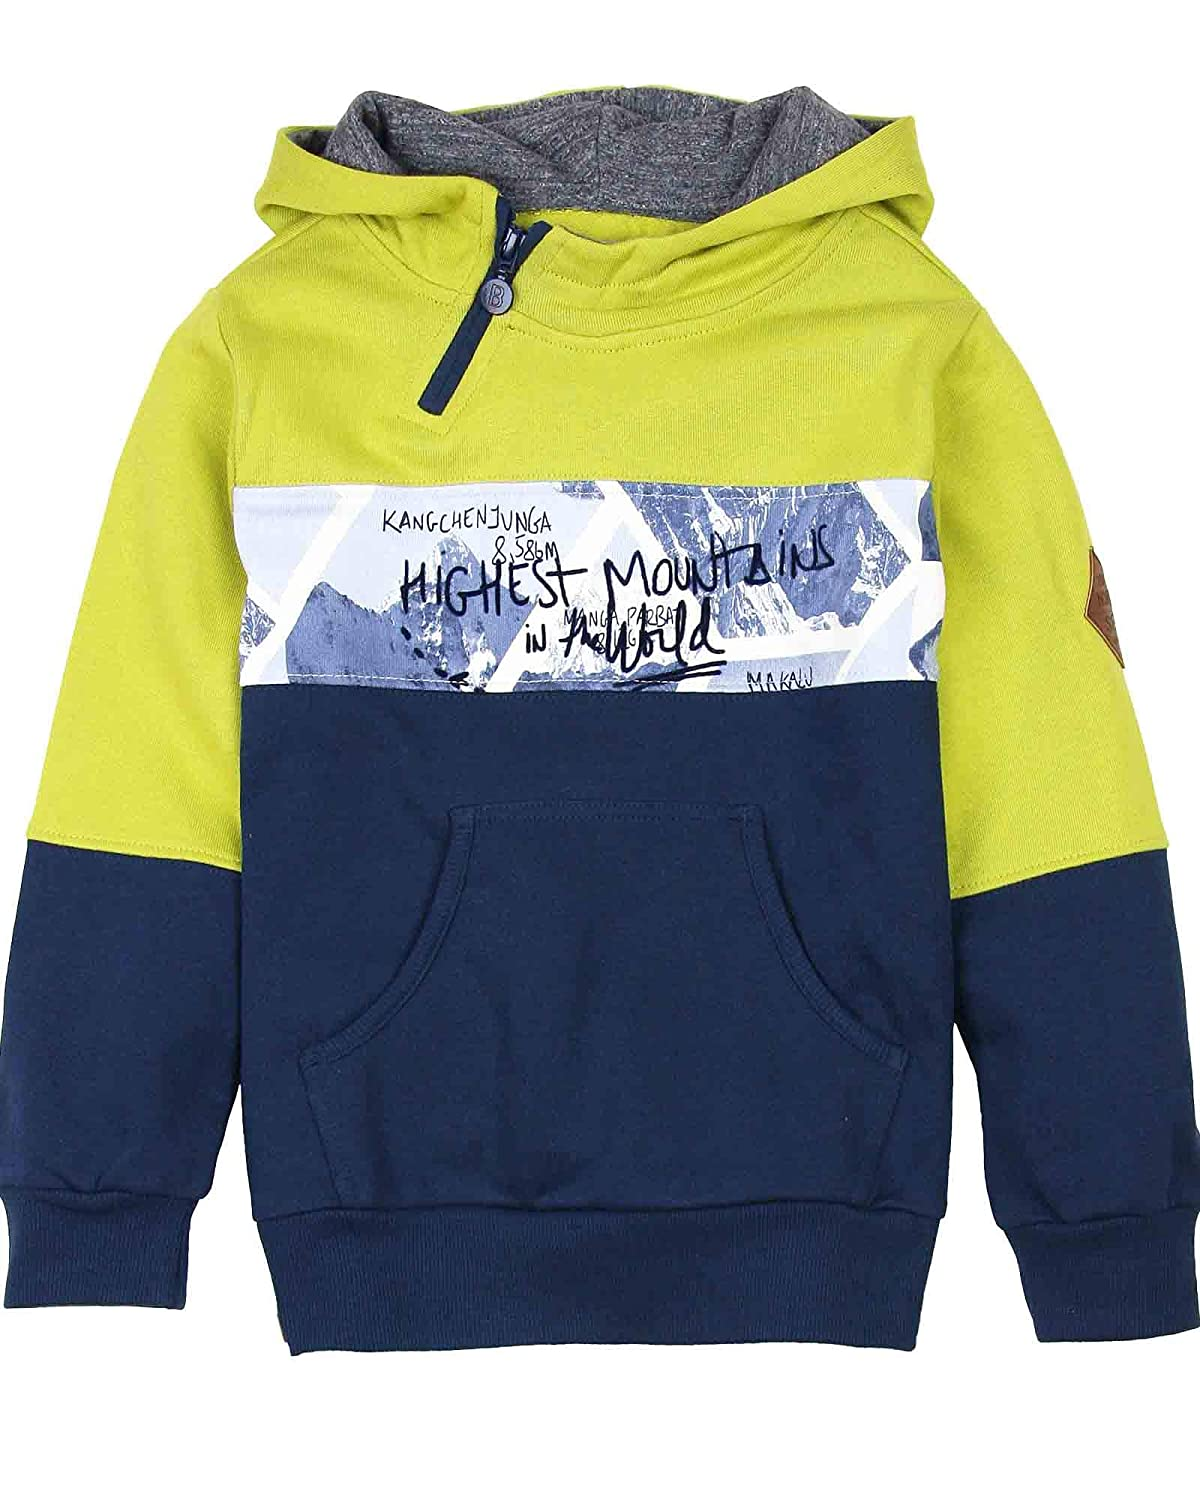 Boboli Boys Two Colour-Way Sweatshirt, Sizes 4-16